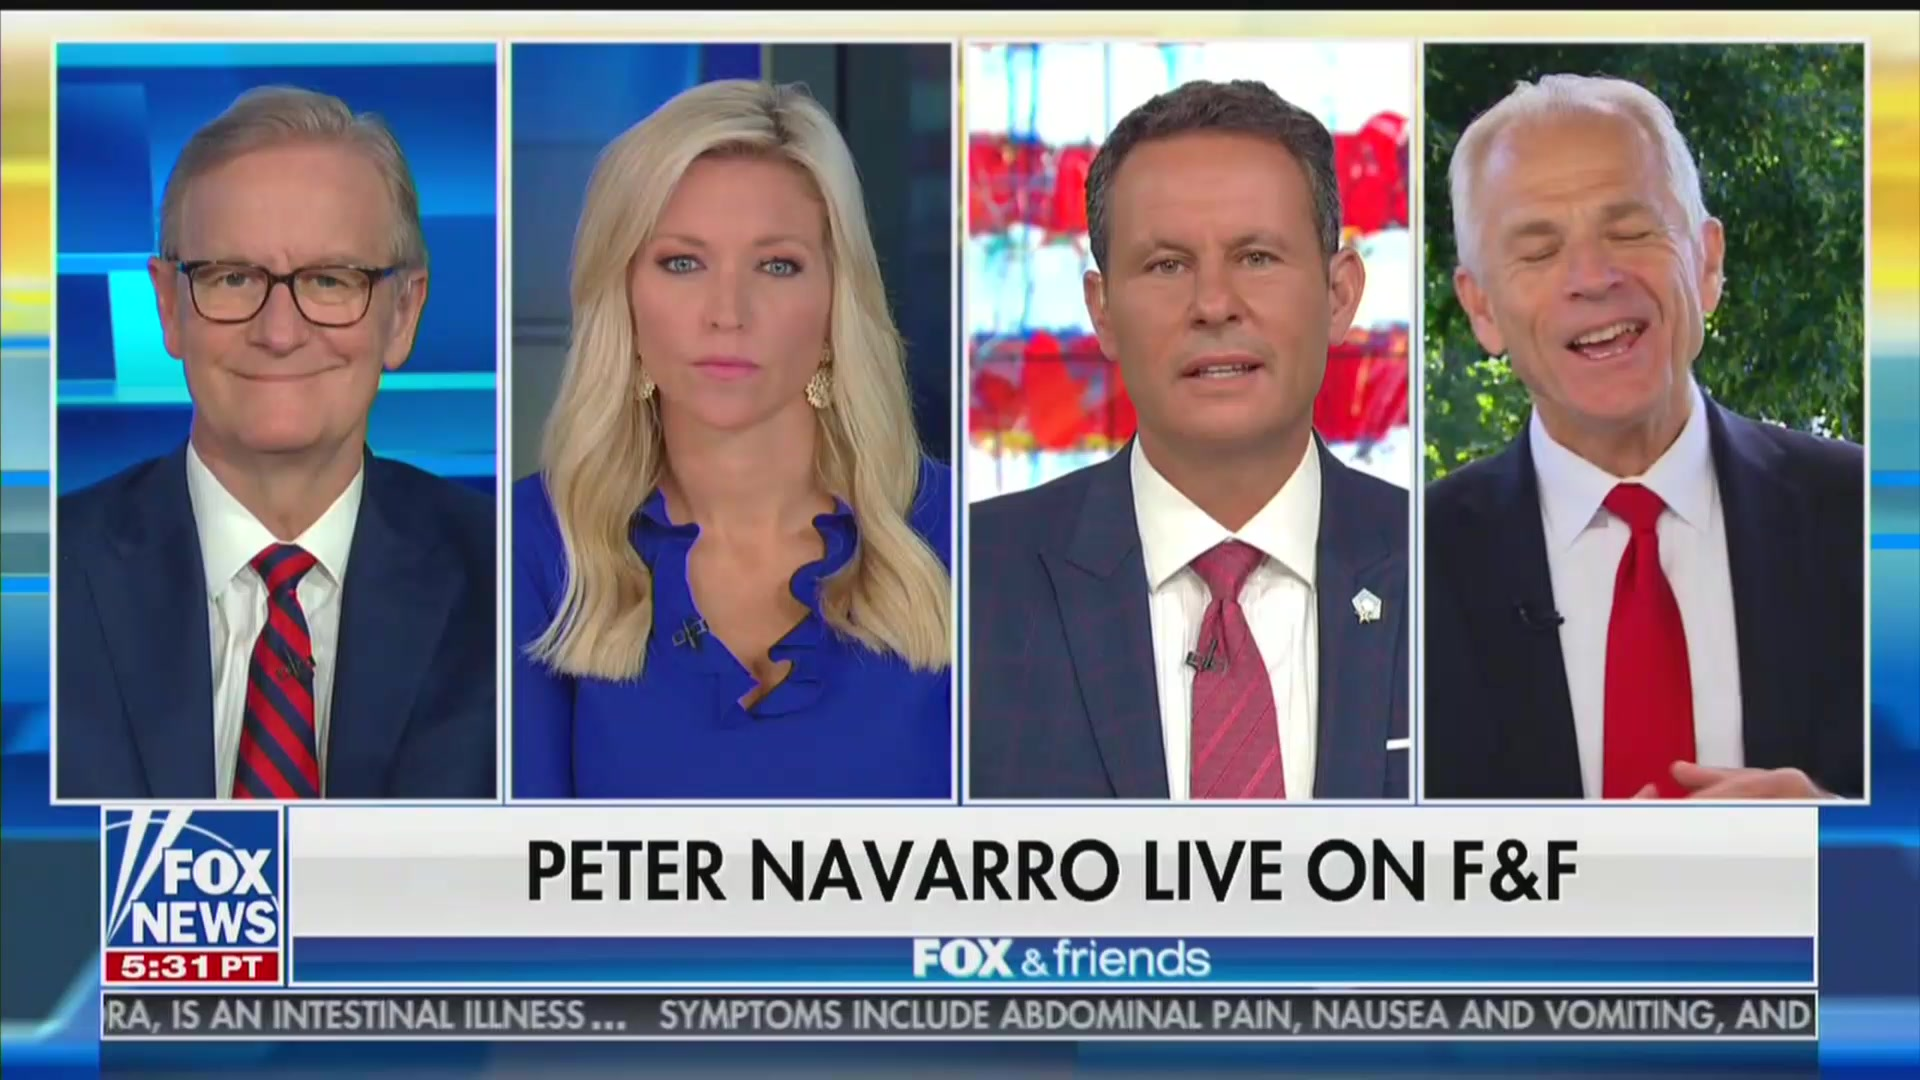 Peter Navarro Doesn't Regret Anti-Fauci Op-Ed, Mocks Doctor Over Botched First Pitch